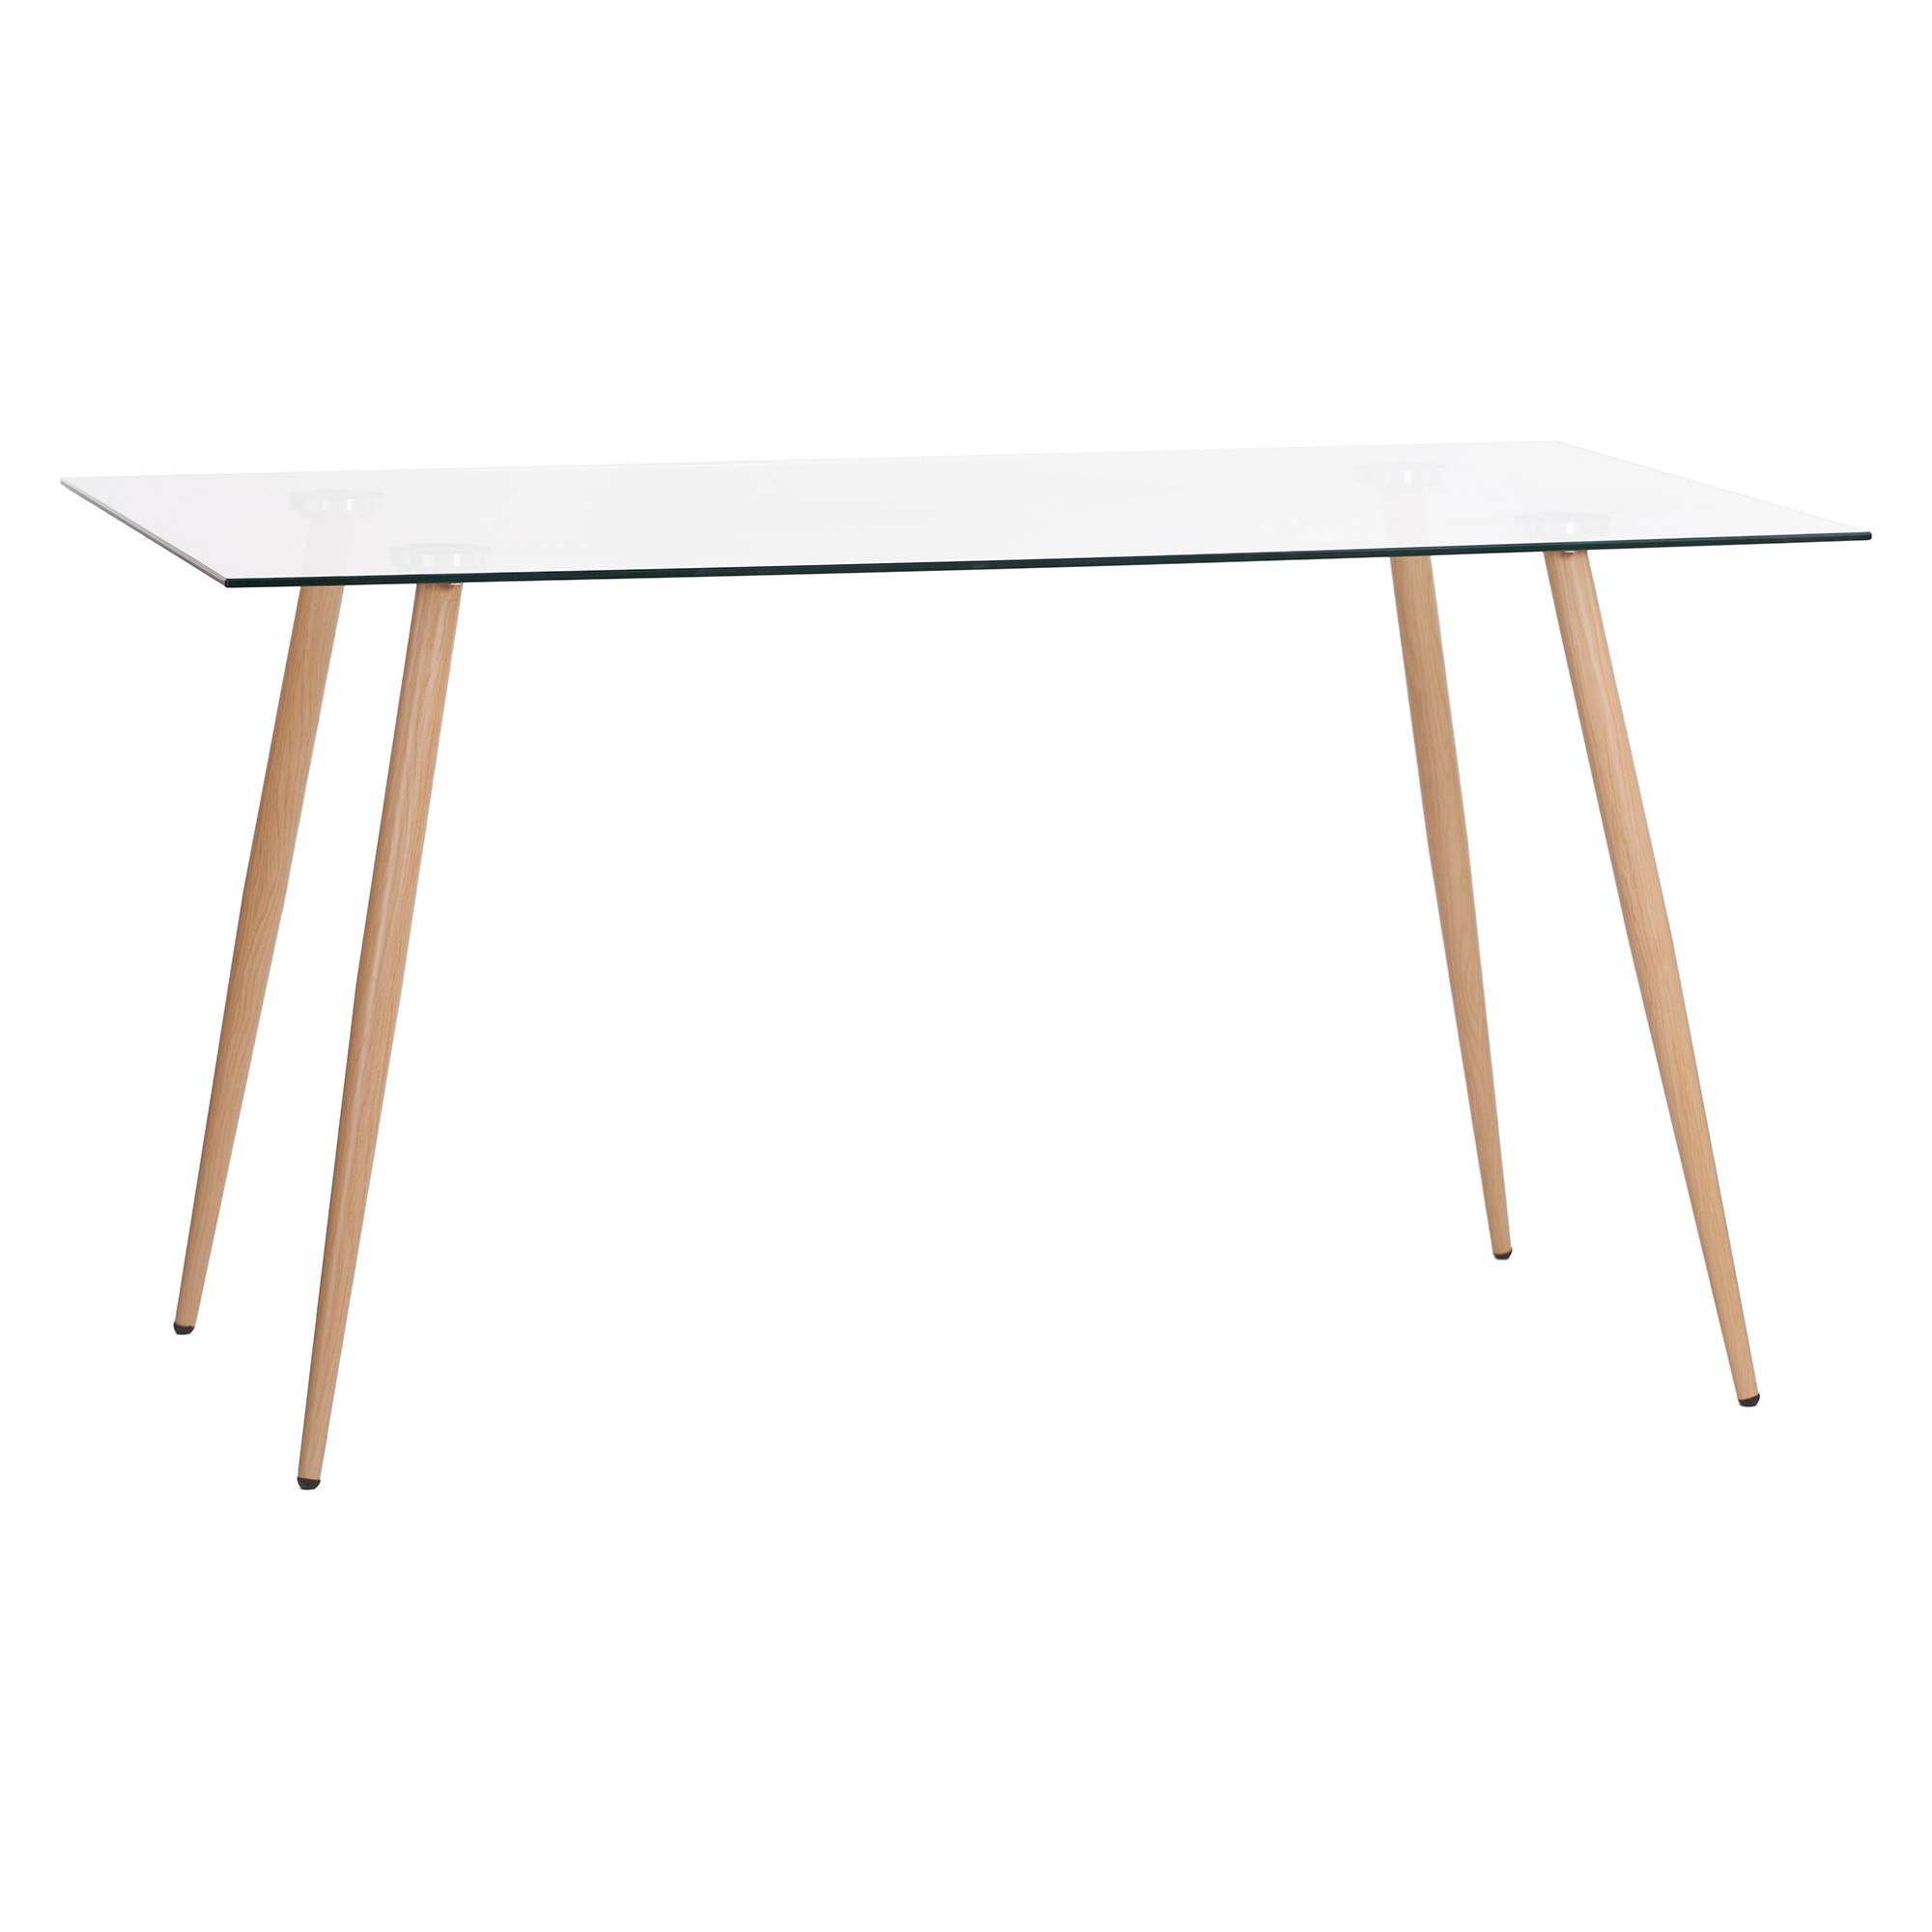 Zolfo Tempered Glass Top Dining Table, 140cm